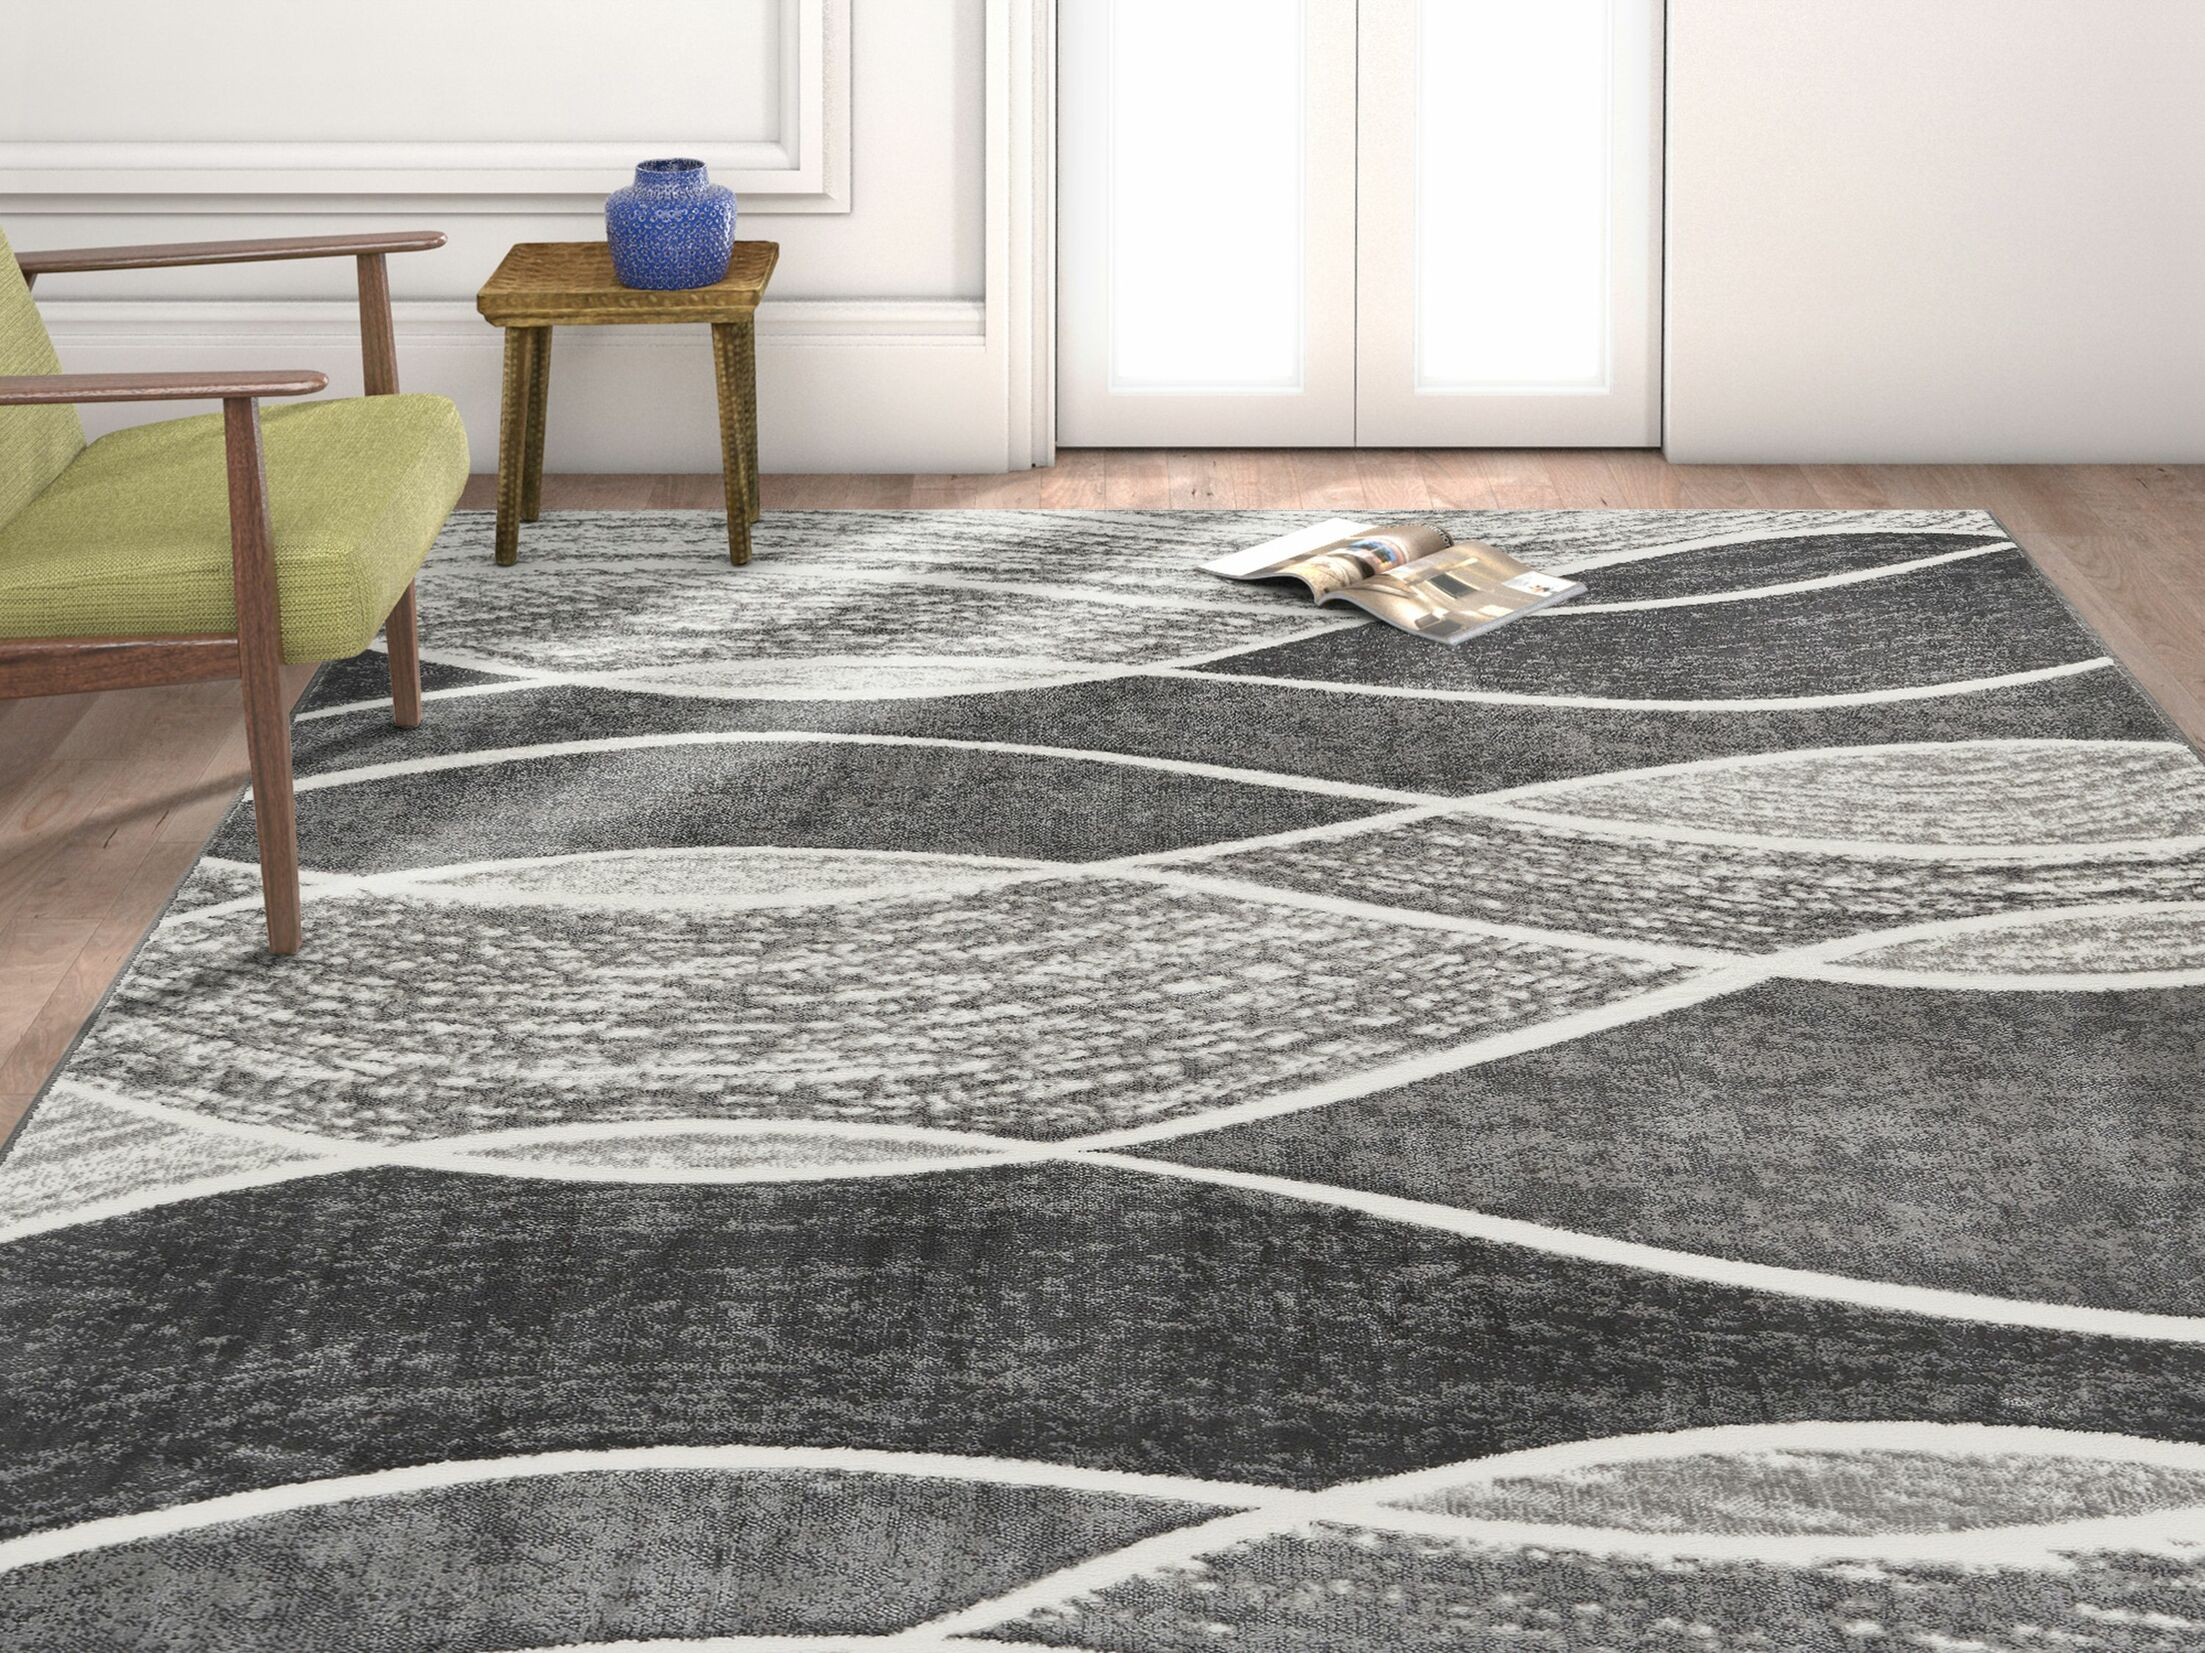 Giardina Abstract Swirls Gray Area Rug Rug Size: Rectangle 7'10